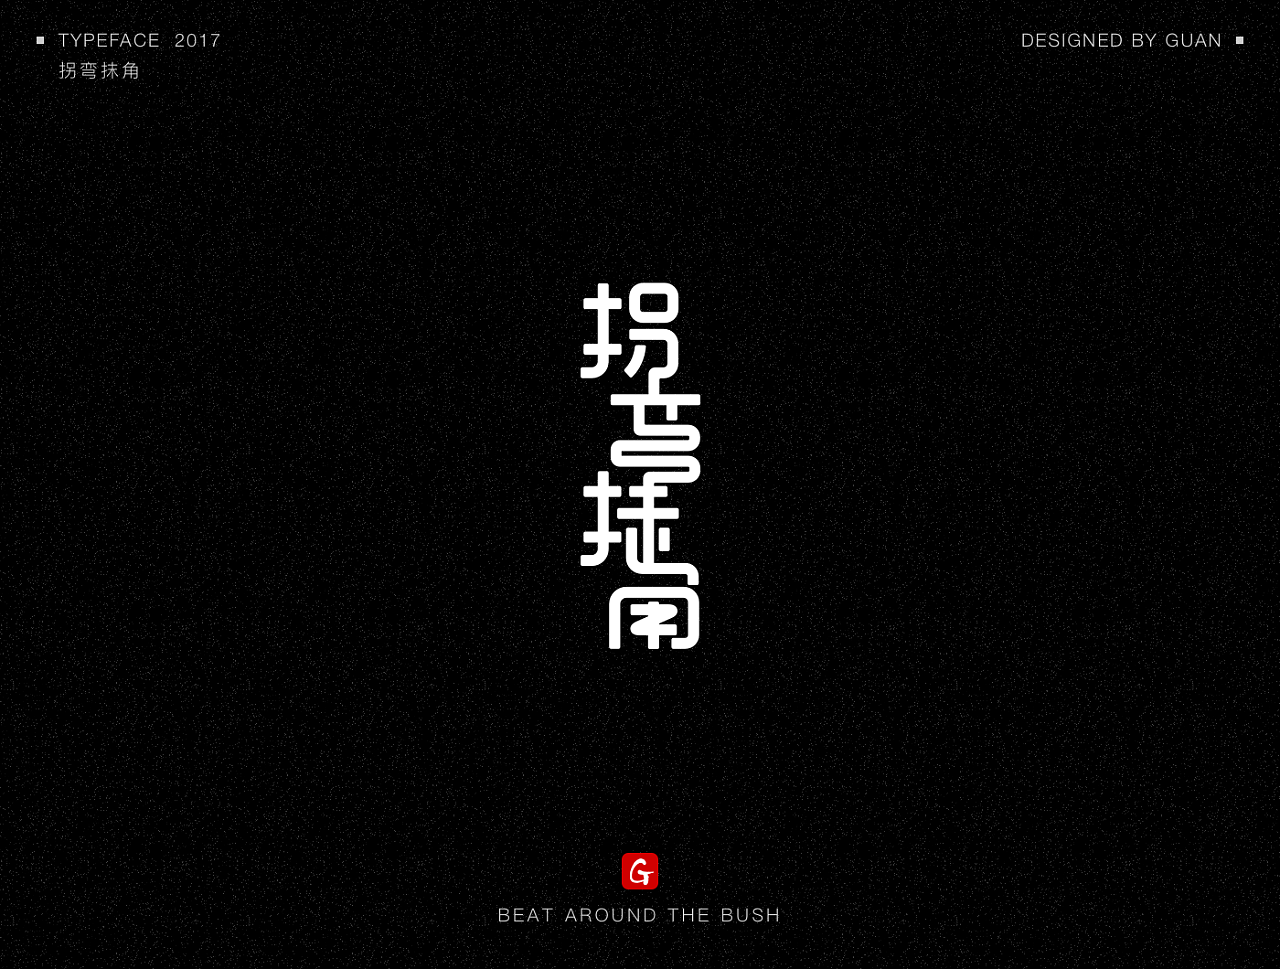 chinesefontdesign.com 2017 09 19 10 54 13 568253 20P Super fashionable Chinese font style design